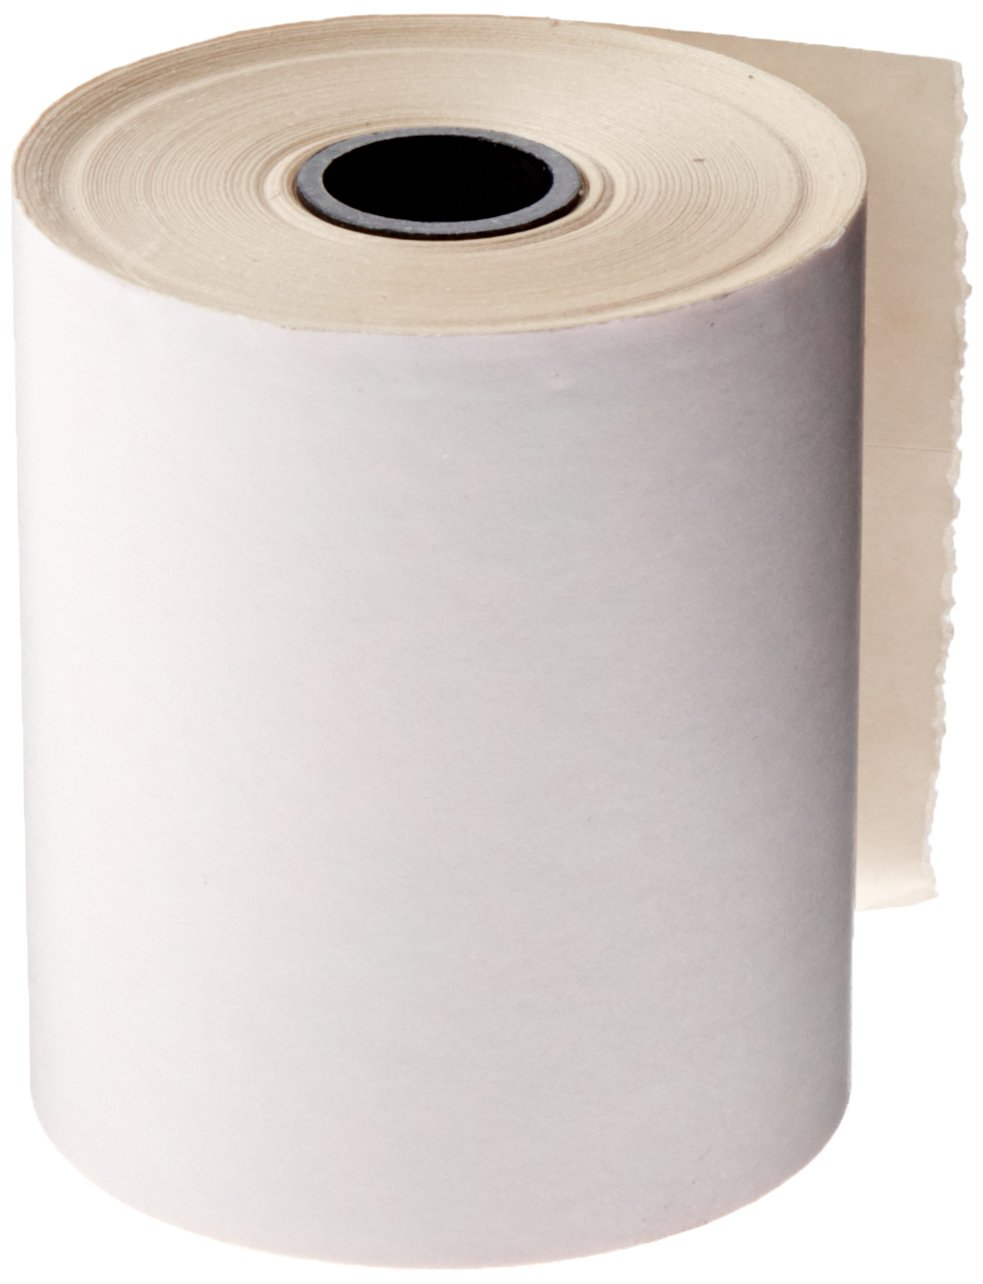 Mettler Toledo 1207T63PK 11600388 Self-Adhesive Paper Roll (Pack of 3) Thomas Scientific